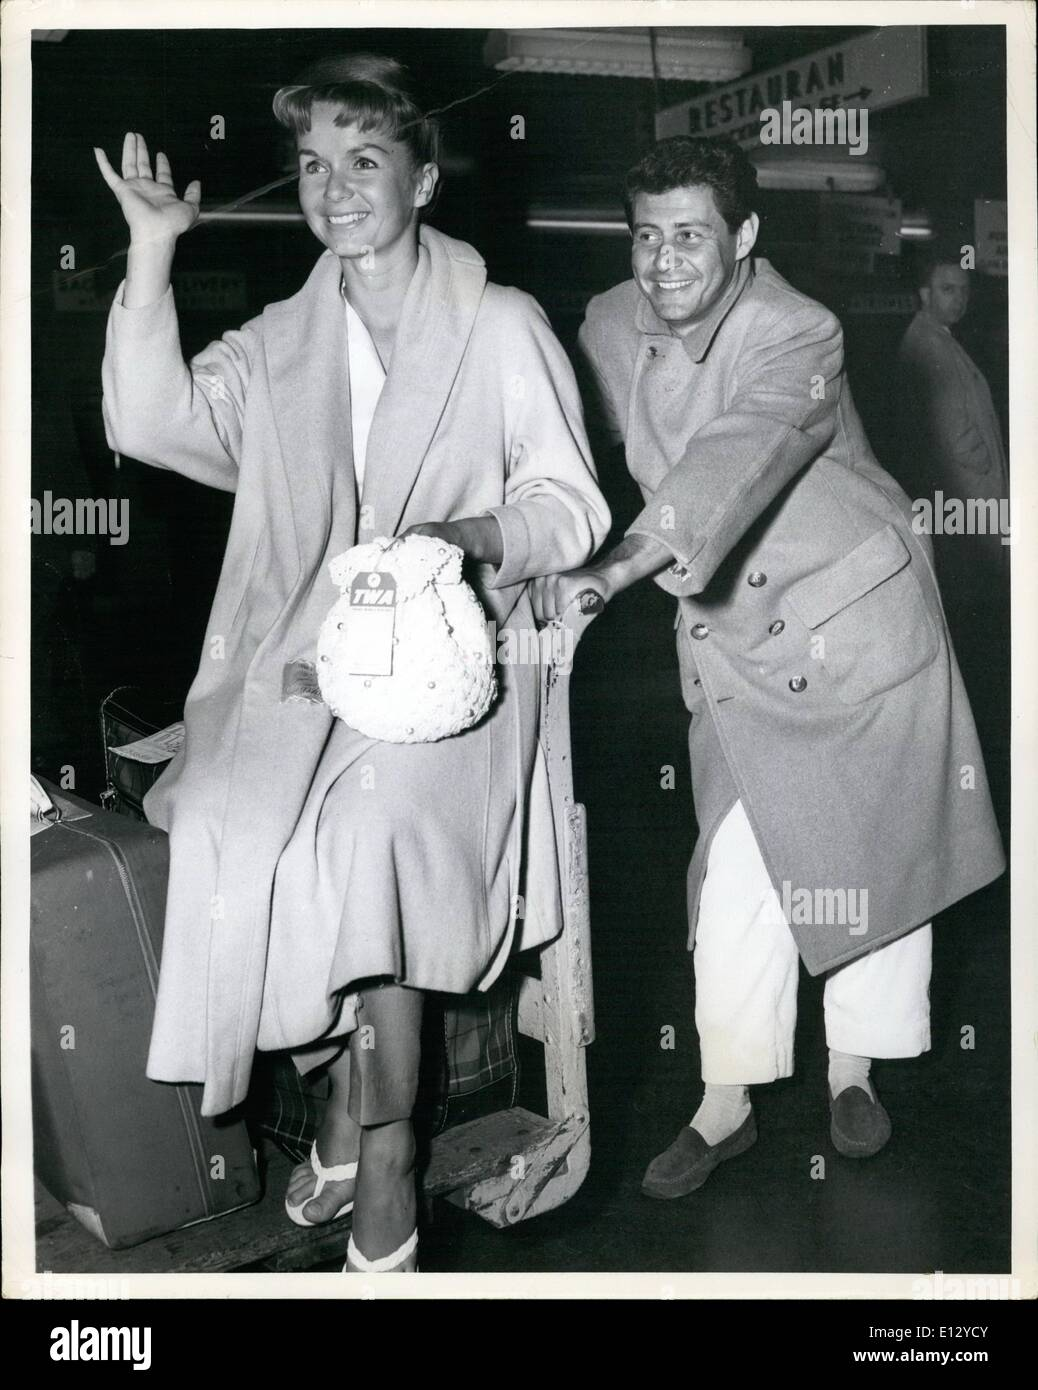 Feb. 26, 2012 - Idlewild Airport, N.Y., May 16. Pretty Debbie Reynolds gets an able assist from her singer husband Eddie Fisher with the baggage on their arrival from Los Angeles via TWA. They're here for a week-end business conference. - Stock Image